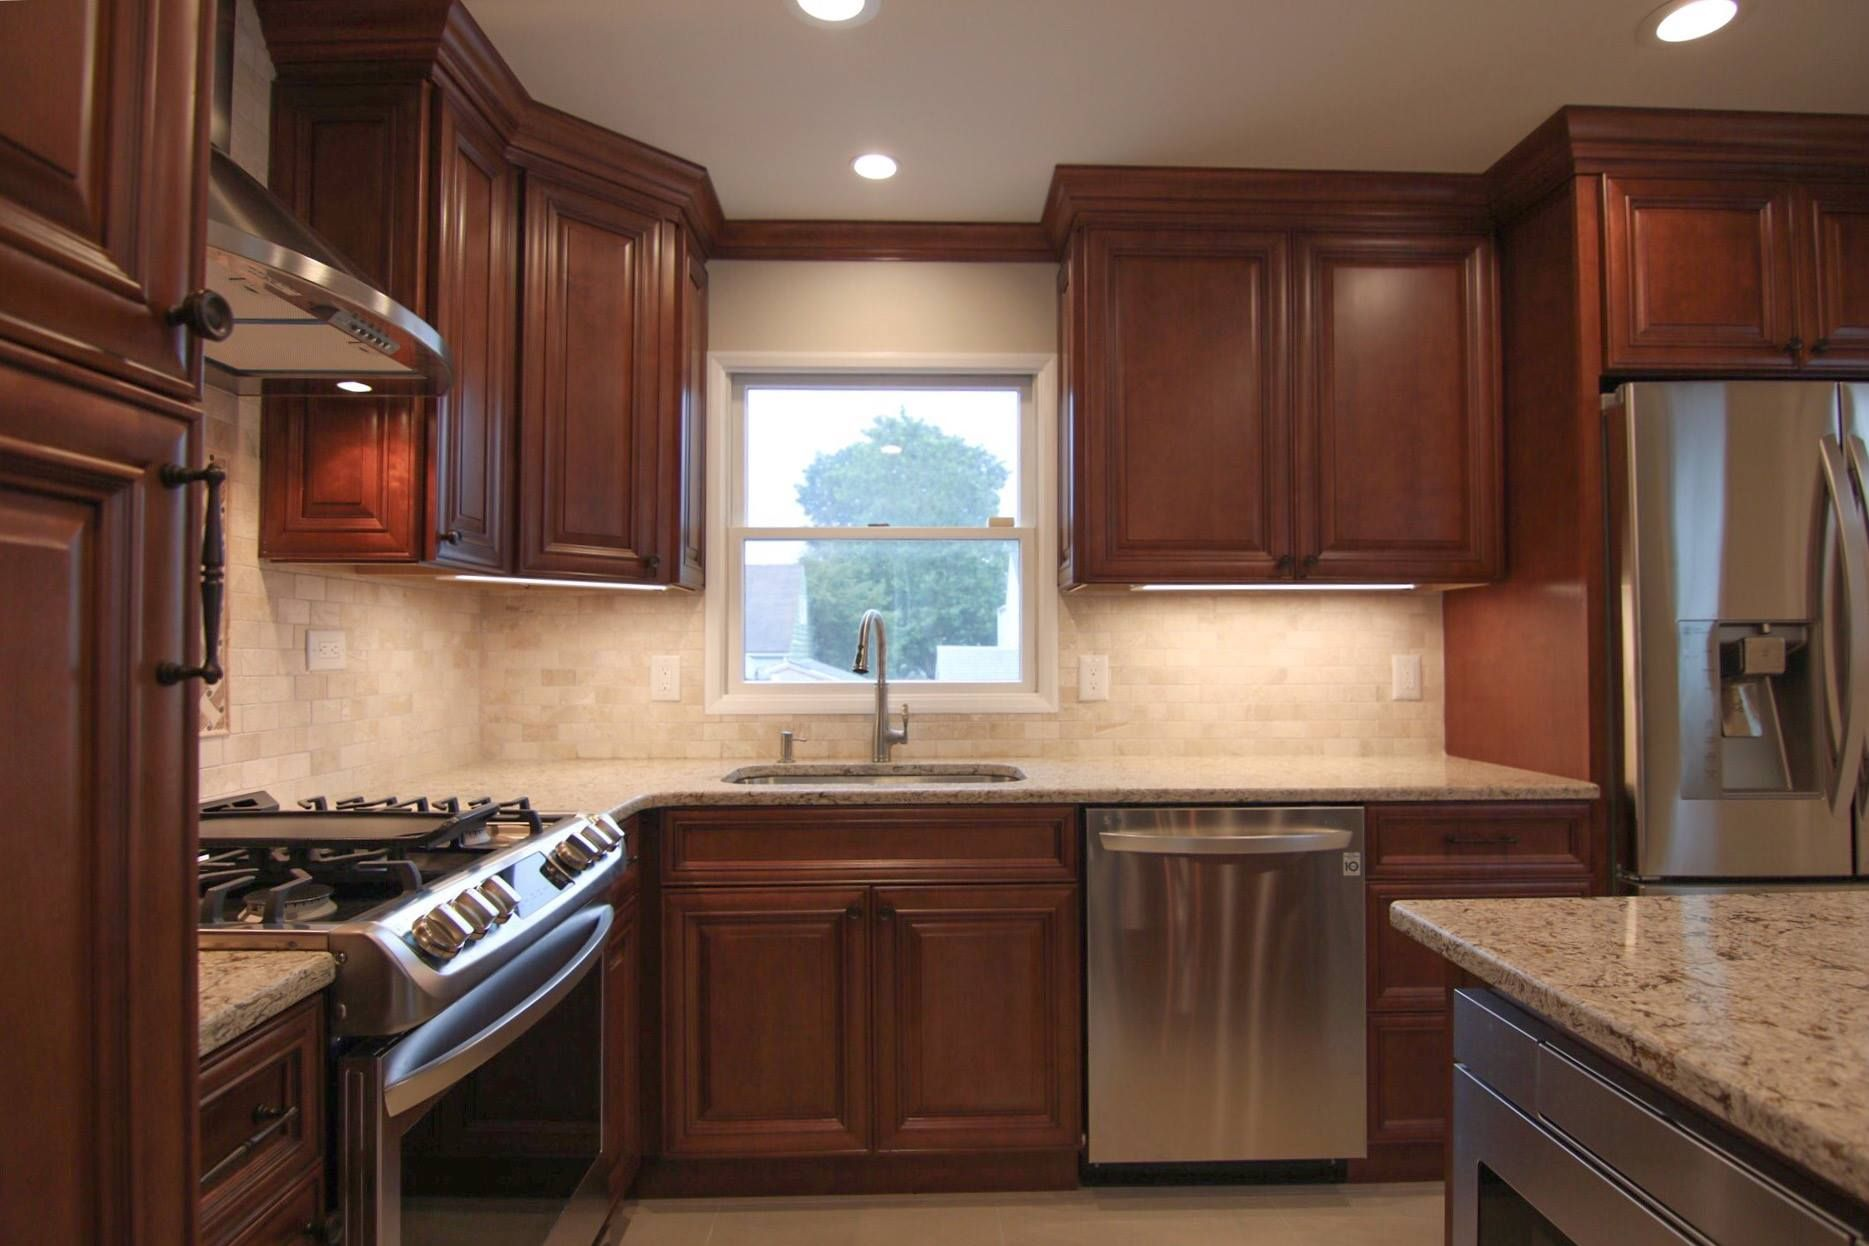 Cherry Kitchen Cabinets Kitchen Remodel Cost Cherry Cabinets Kitchen Kitchen Remodel Layout